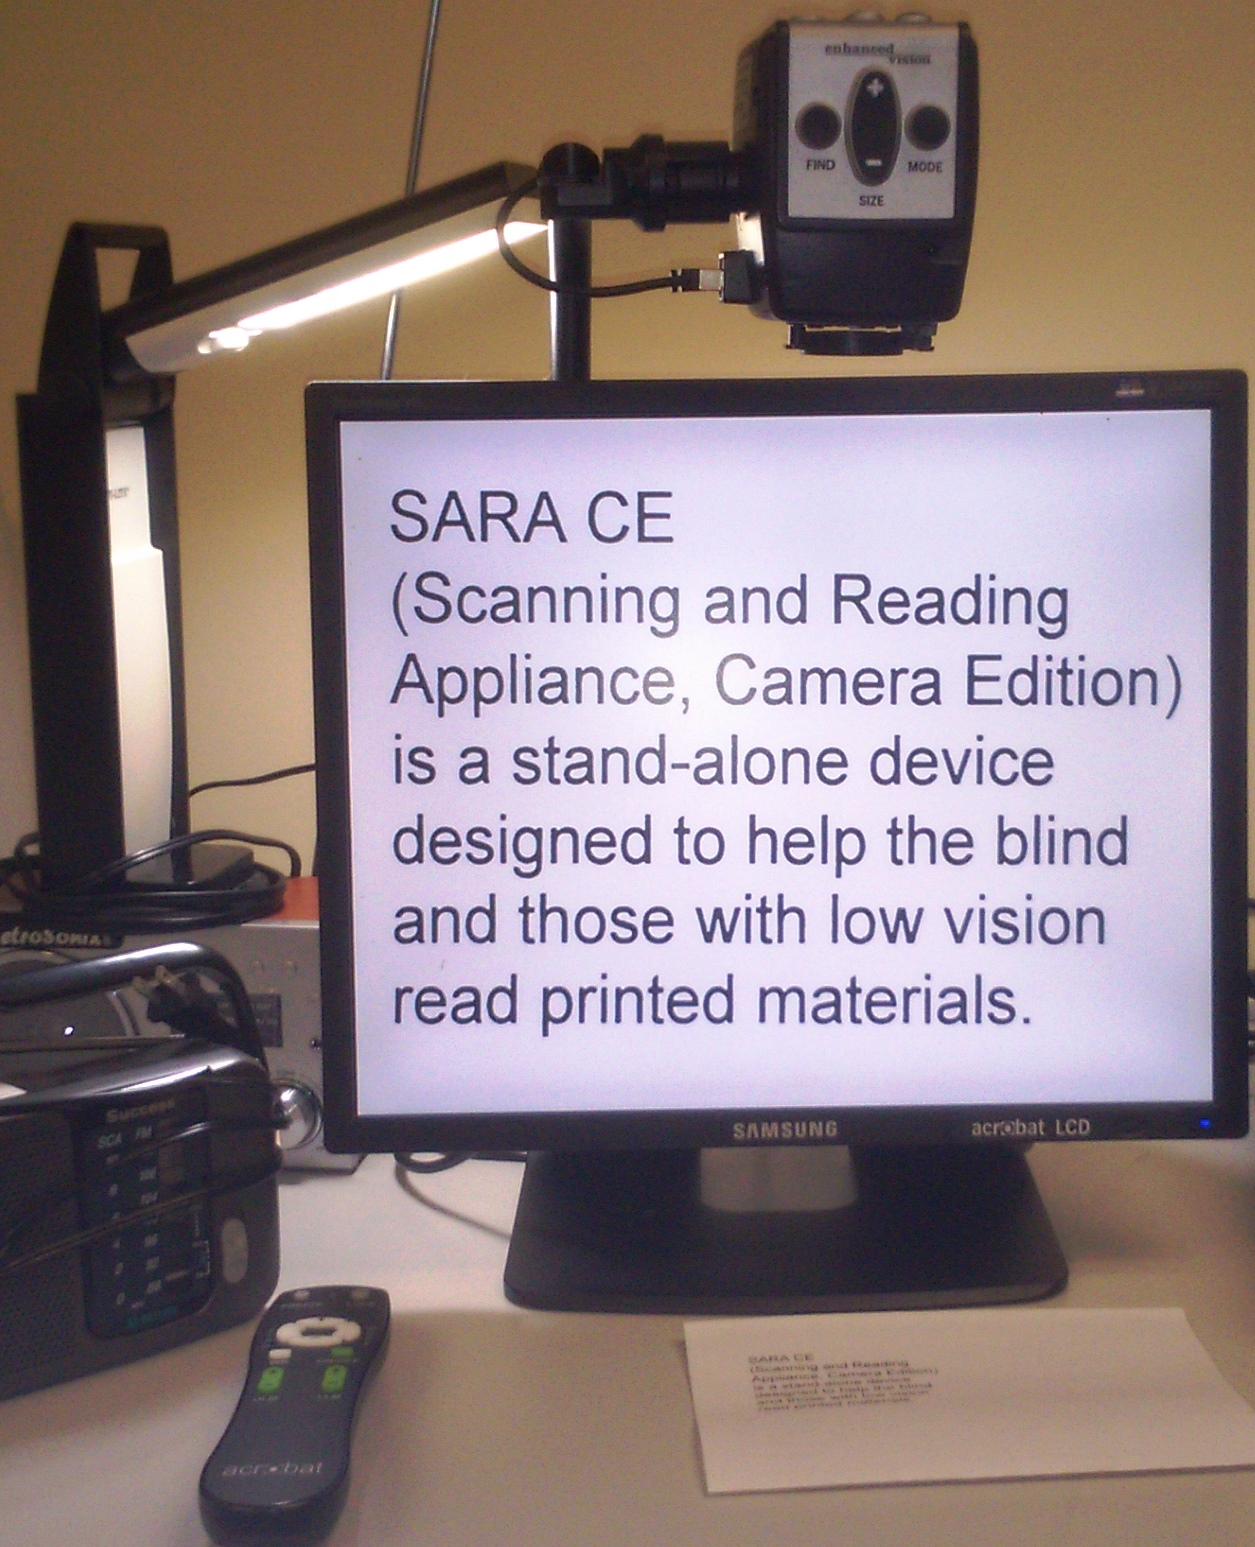 SARA CE scanning and reading appliance, camera edition